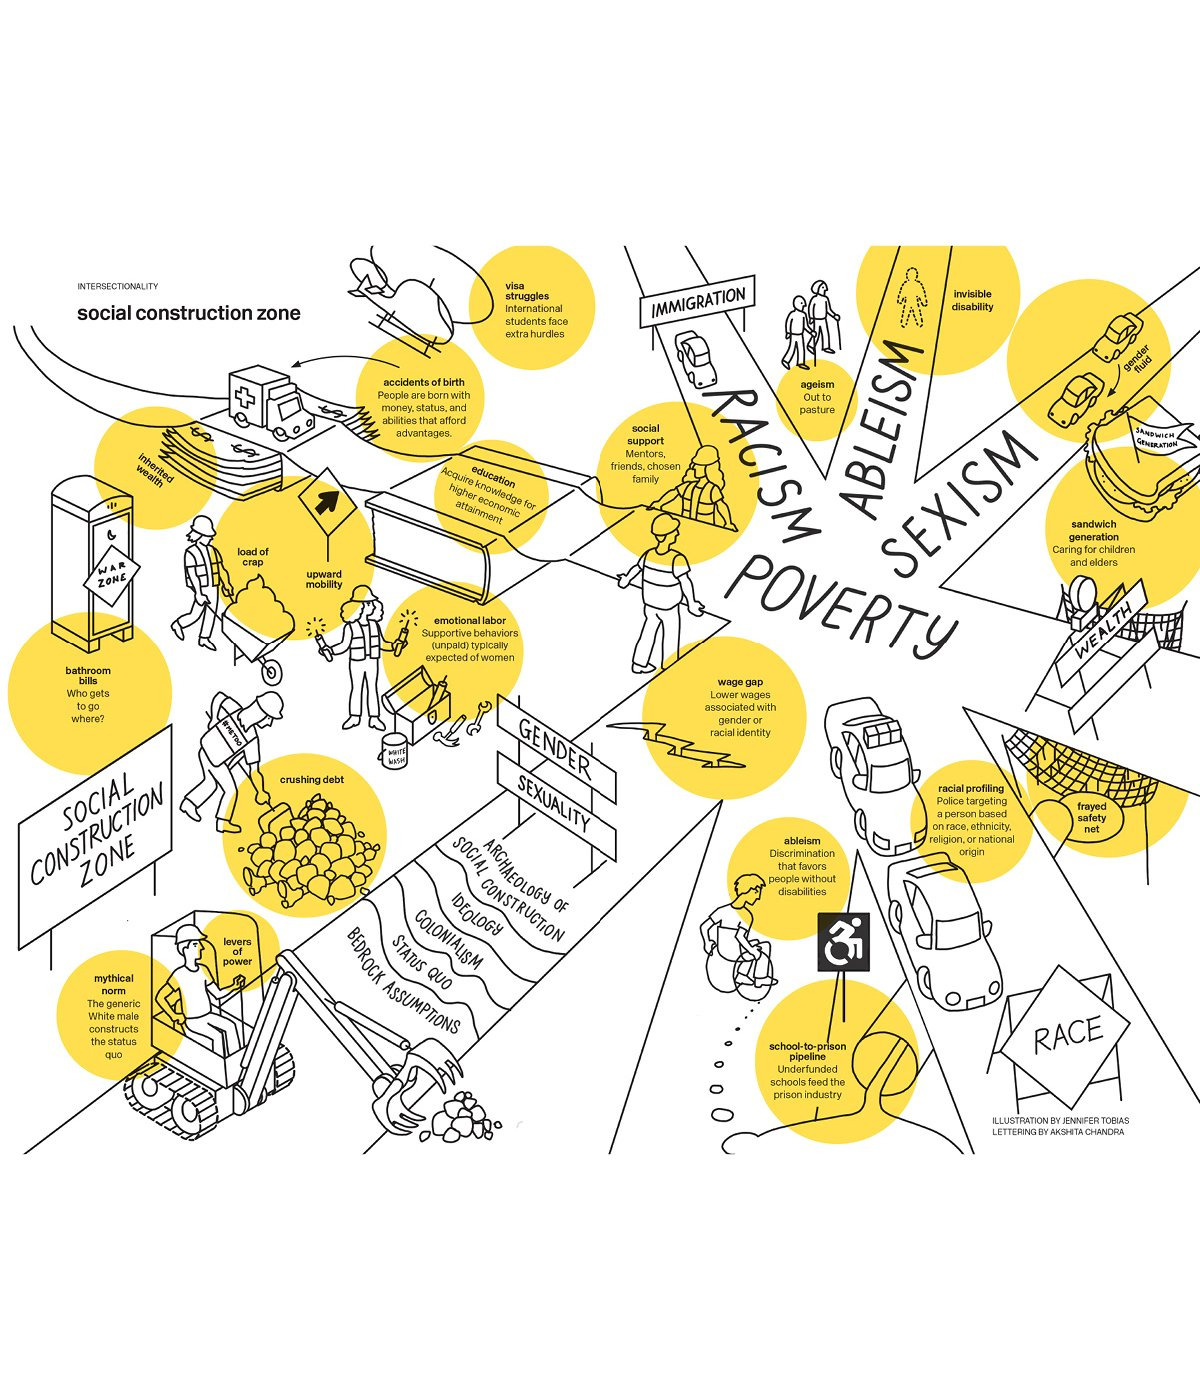 handdrawn illustration of a social construction zone showing the intersection of different identities including racism, poverty, sexism, ableism, and more